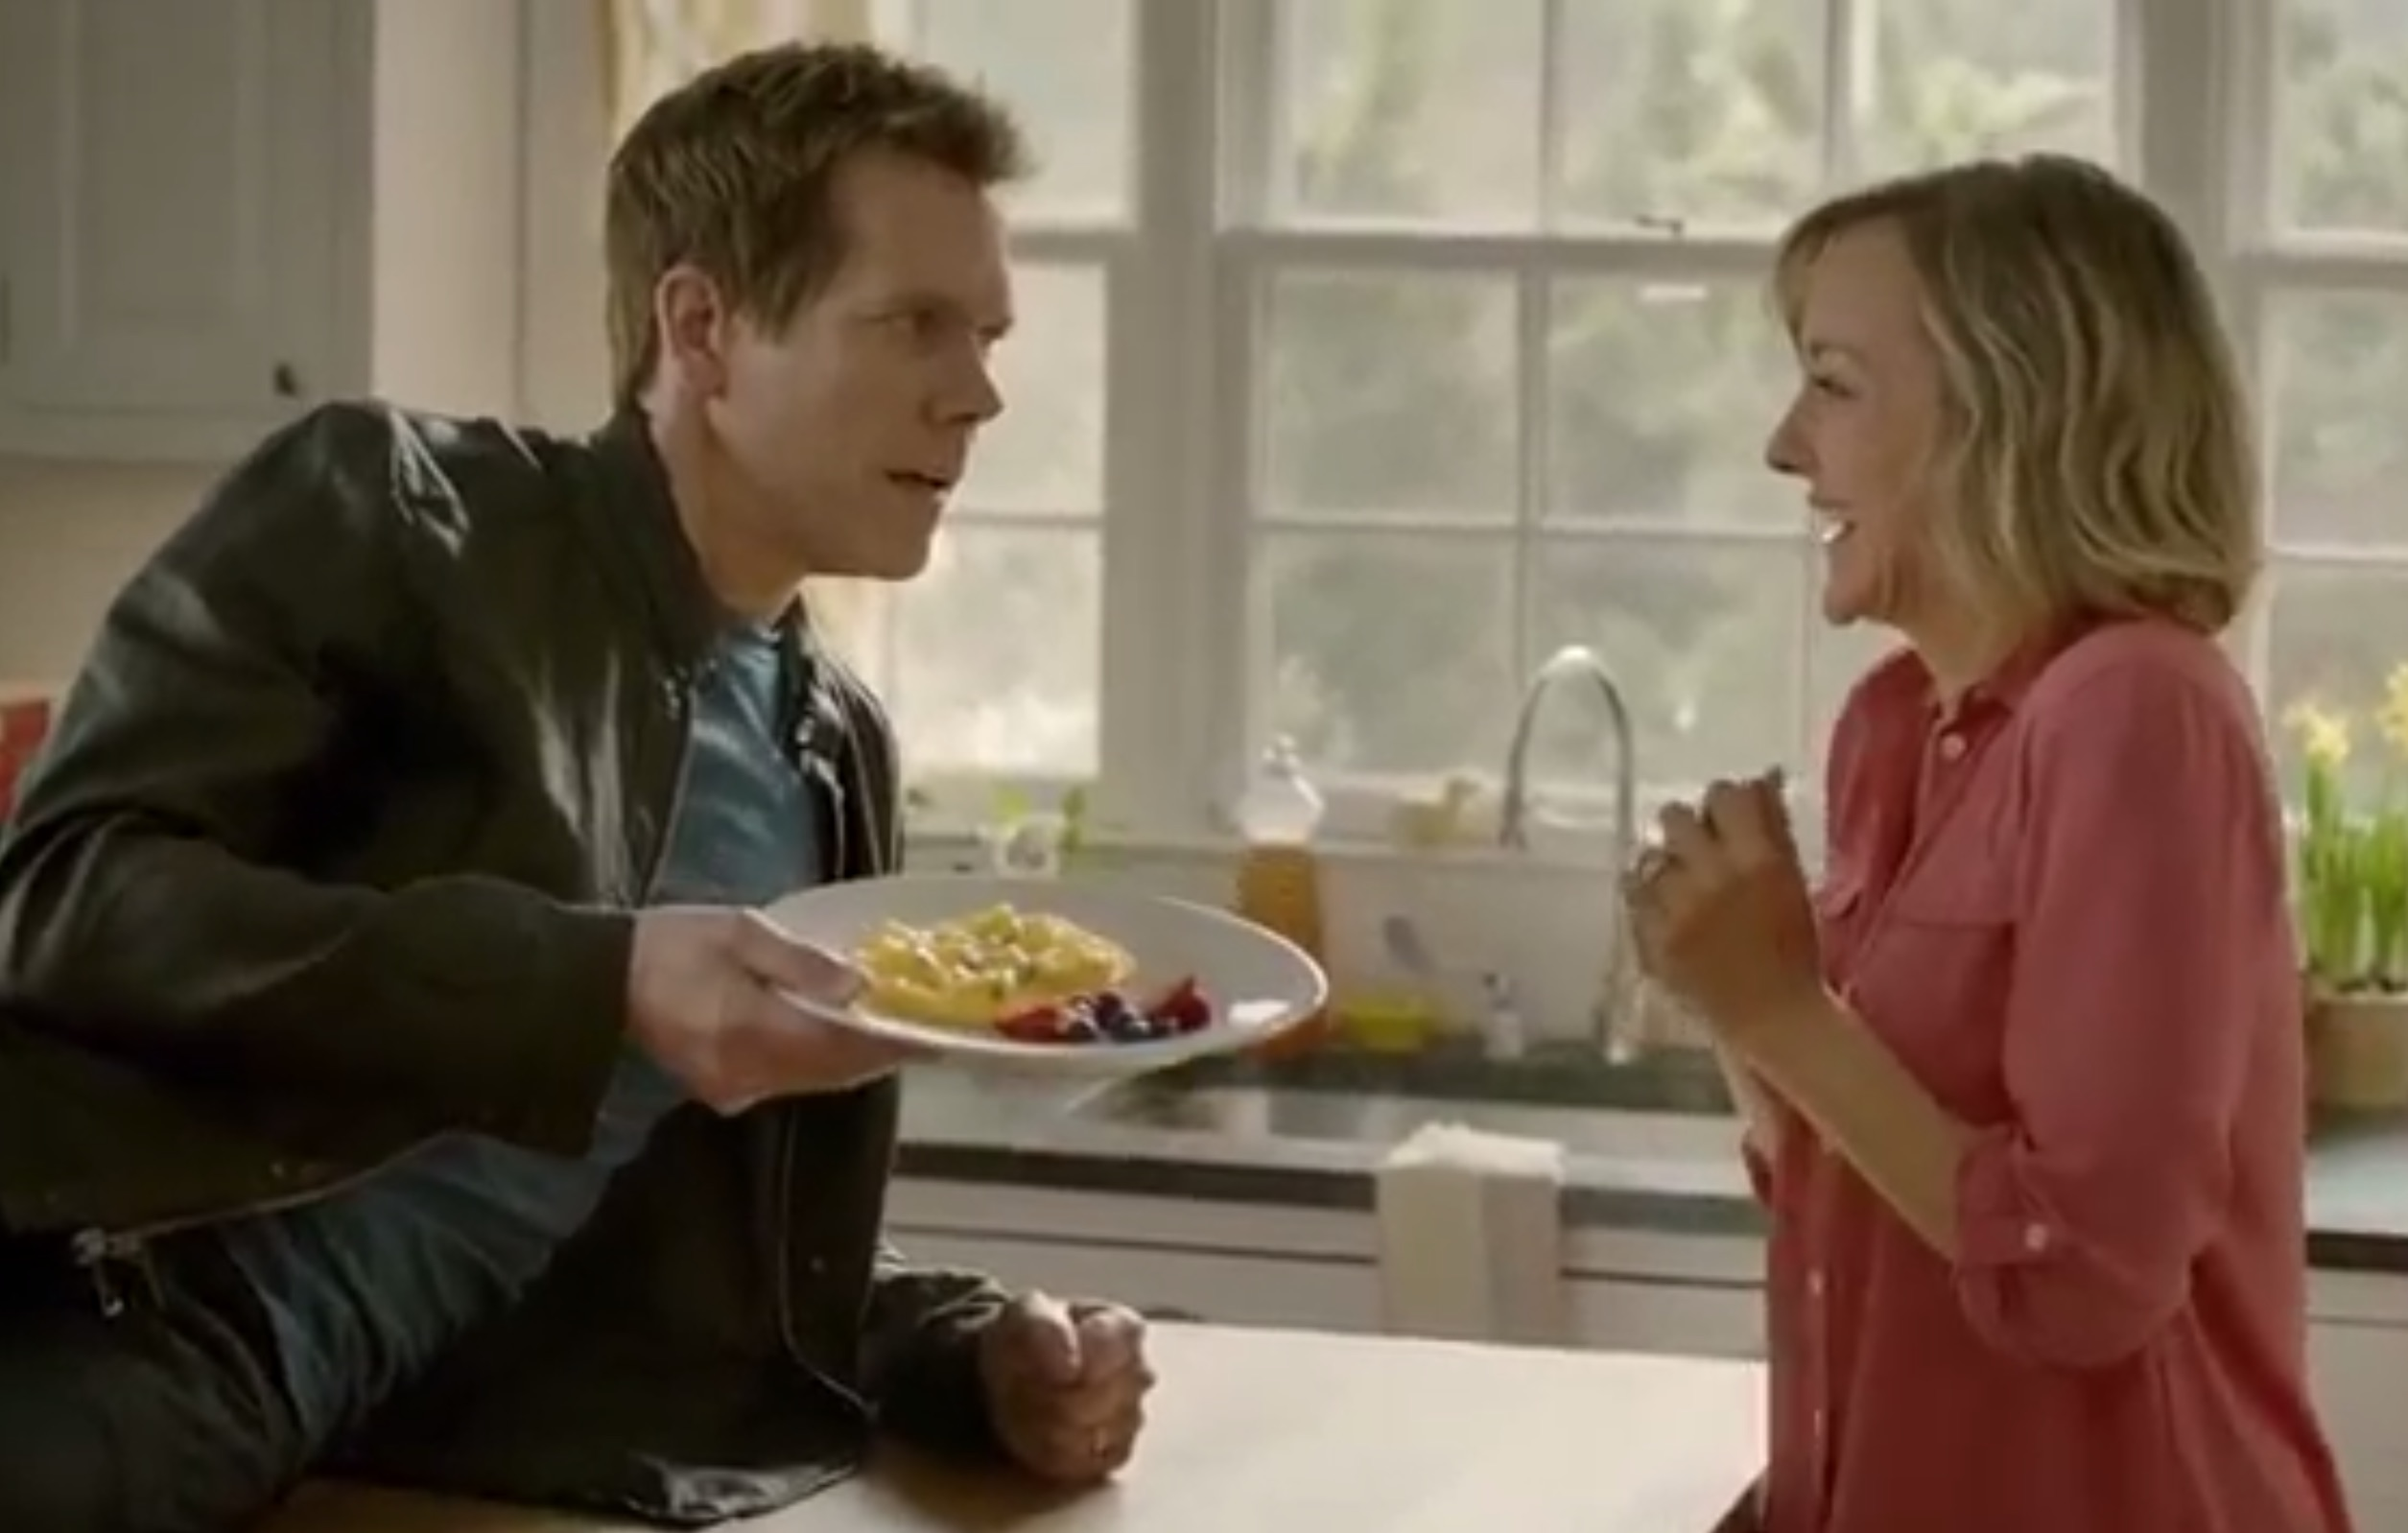 So Kevin Bacon did an ad about eggs, and it is AWESOME